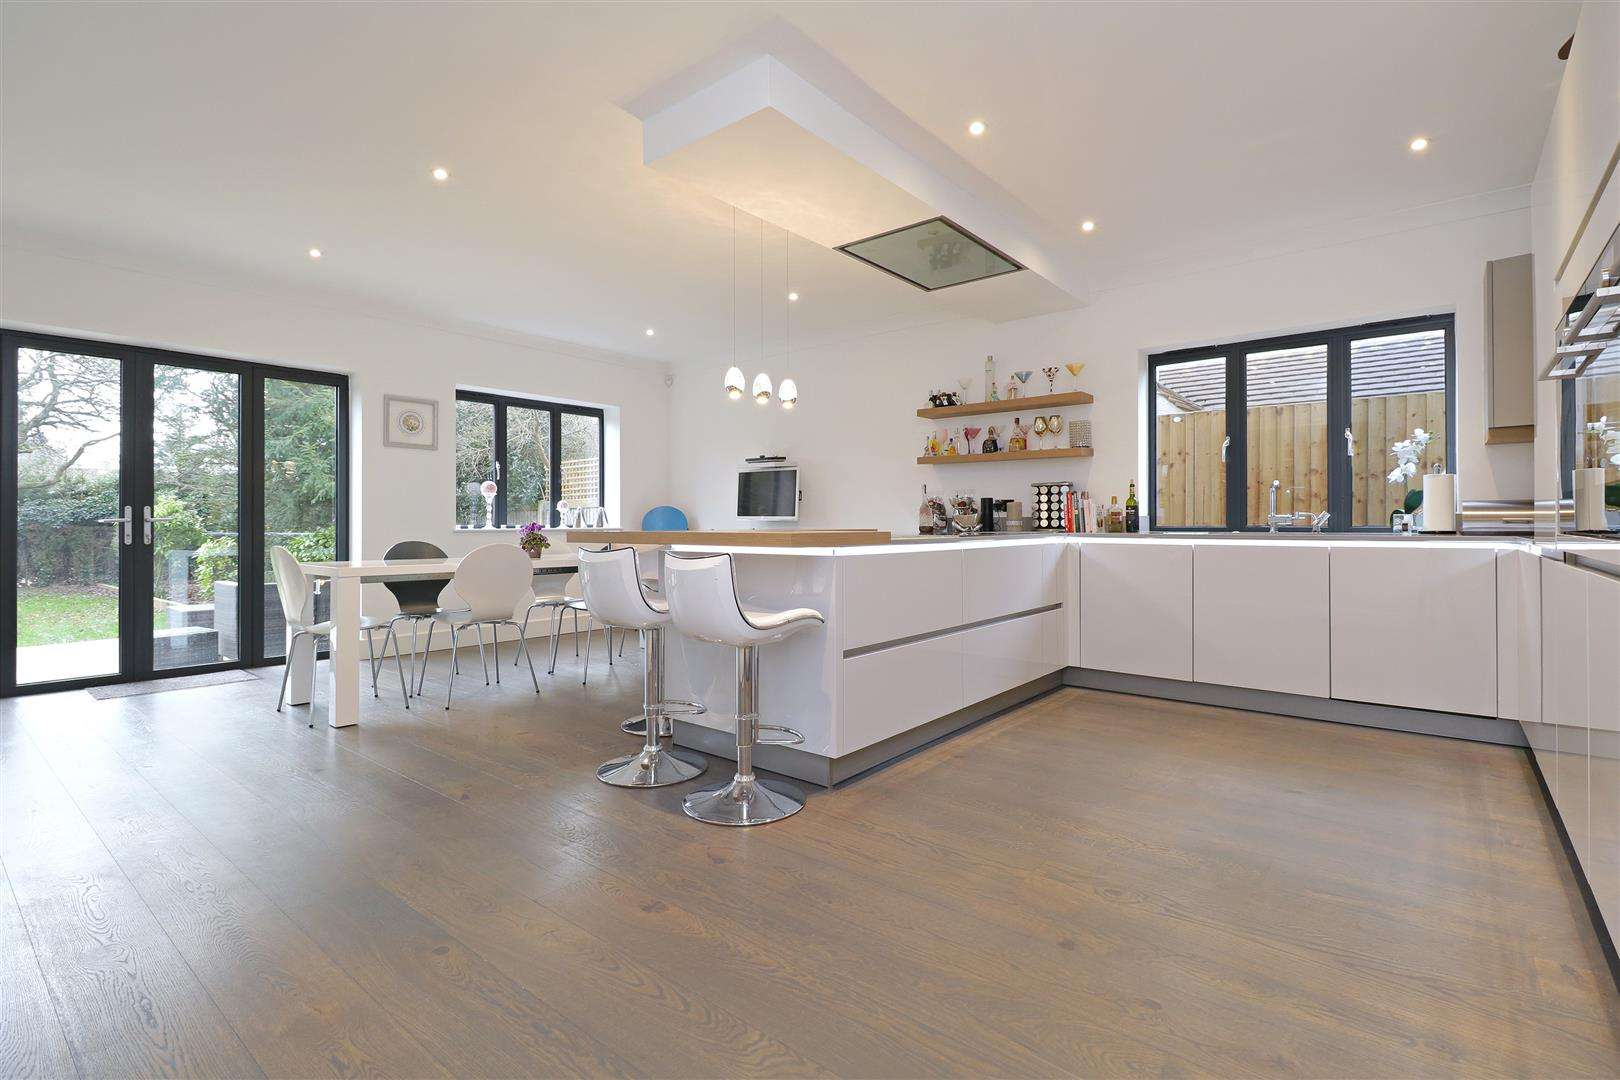 5 bed for sale in Watford Road, Radlett - (Property Image 1)